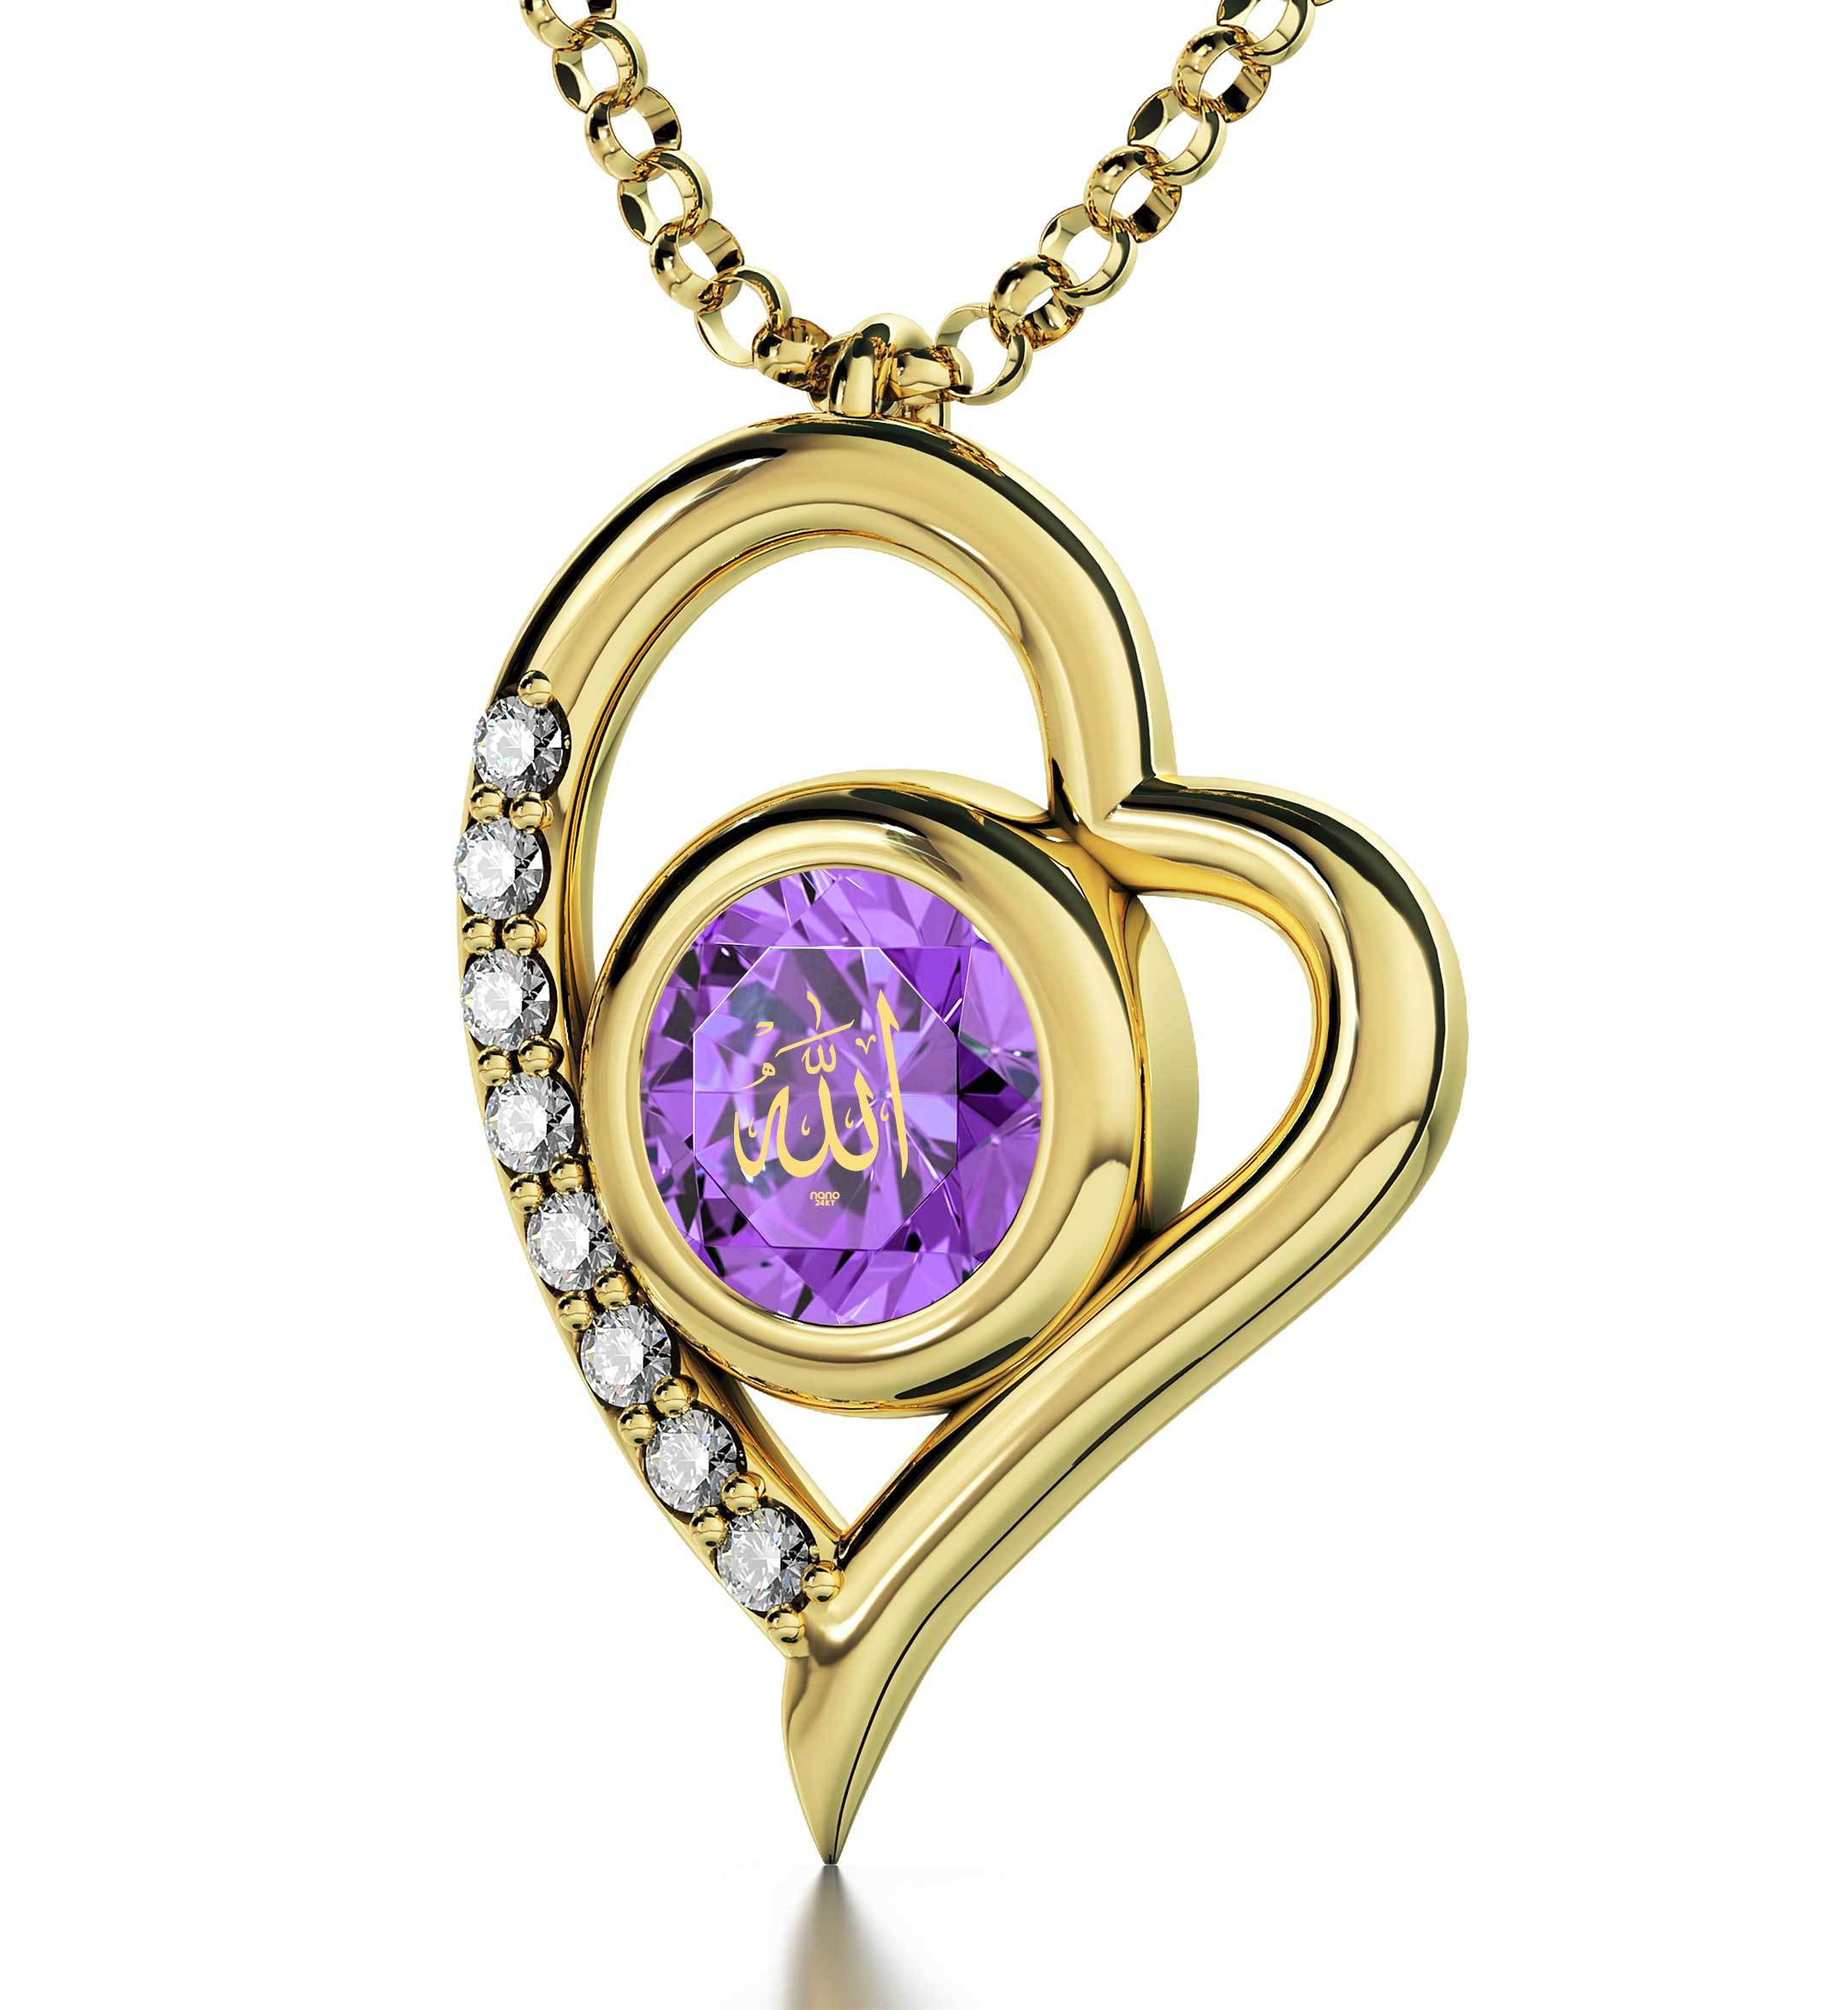 Allah Pendant: Allah imprinted in Pure Gold - Heart with Diamonds - 14k Gold - Nano Jewelry